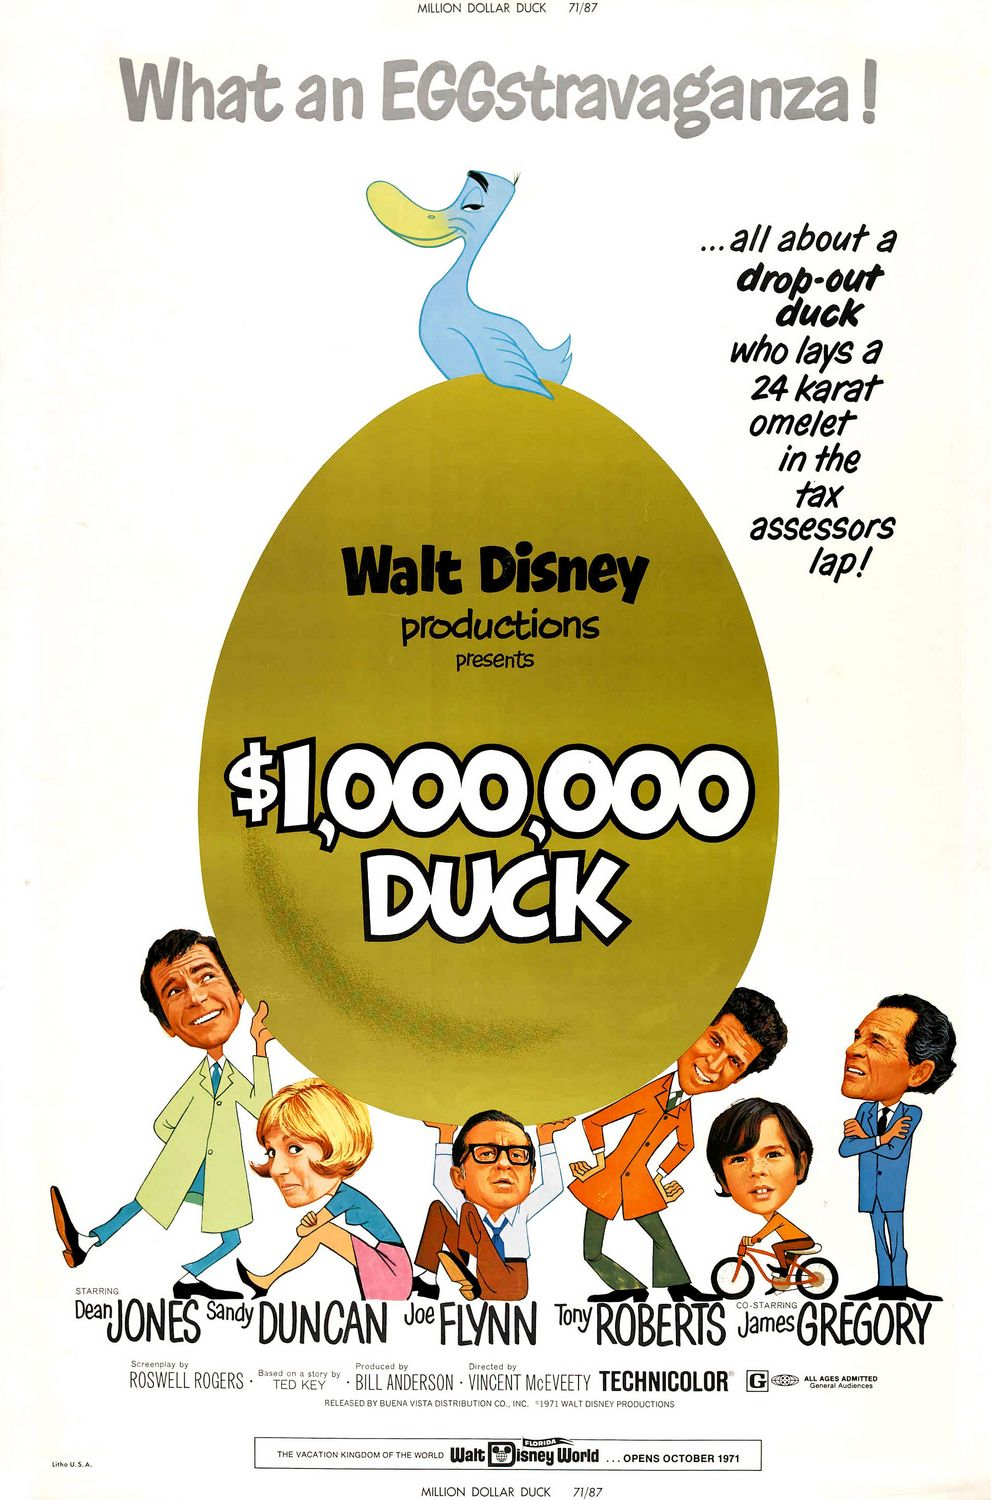 File:Million Dollar Duck.jpg